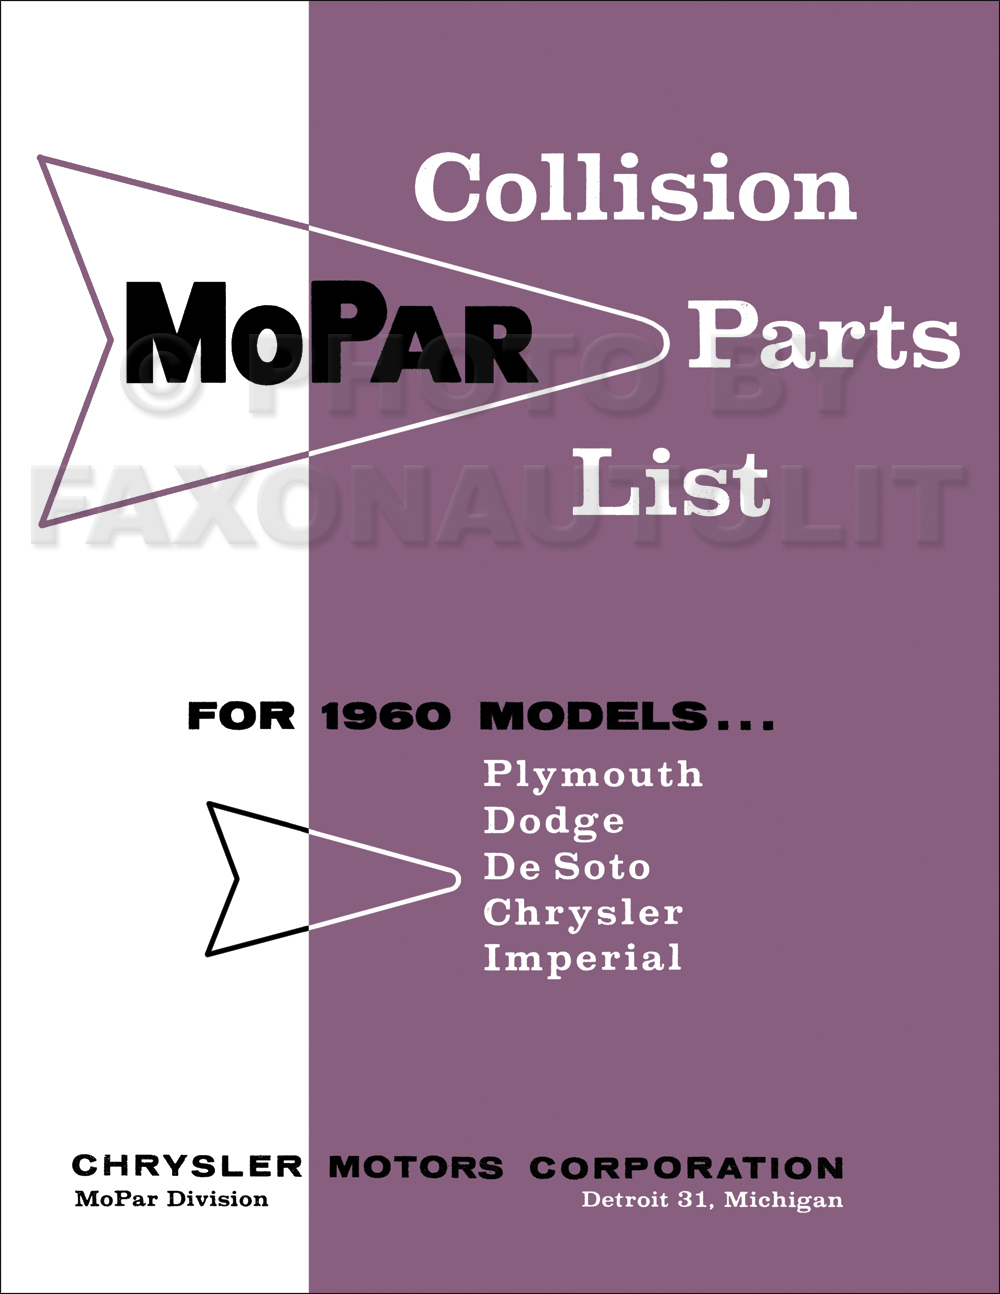 1960 MoPar Collision Parts Book Reprint